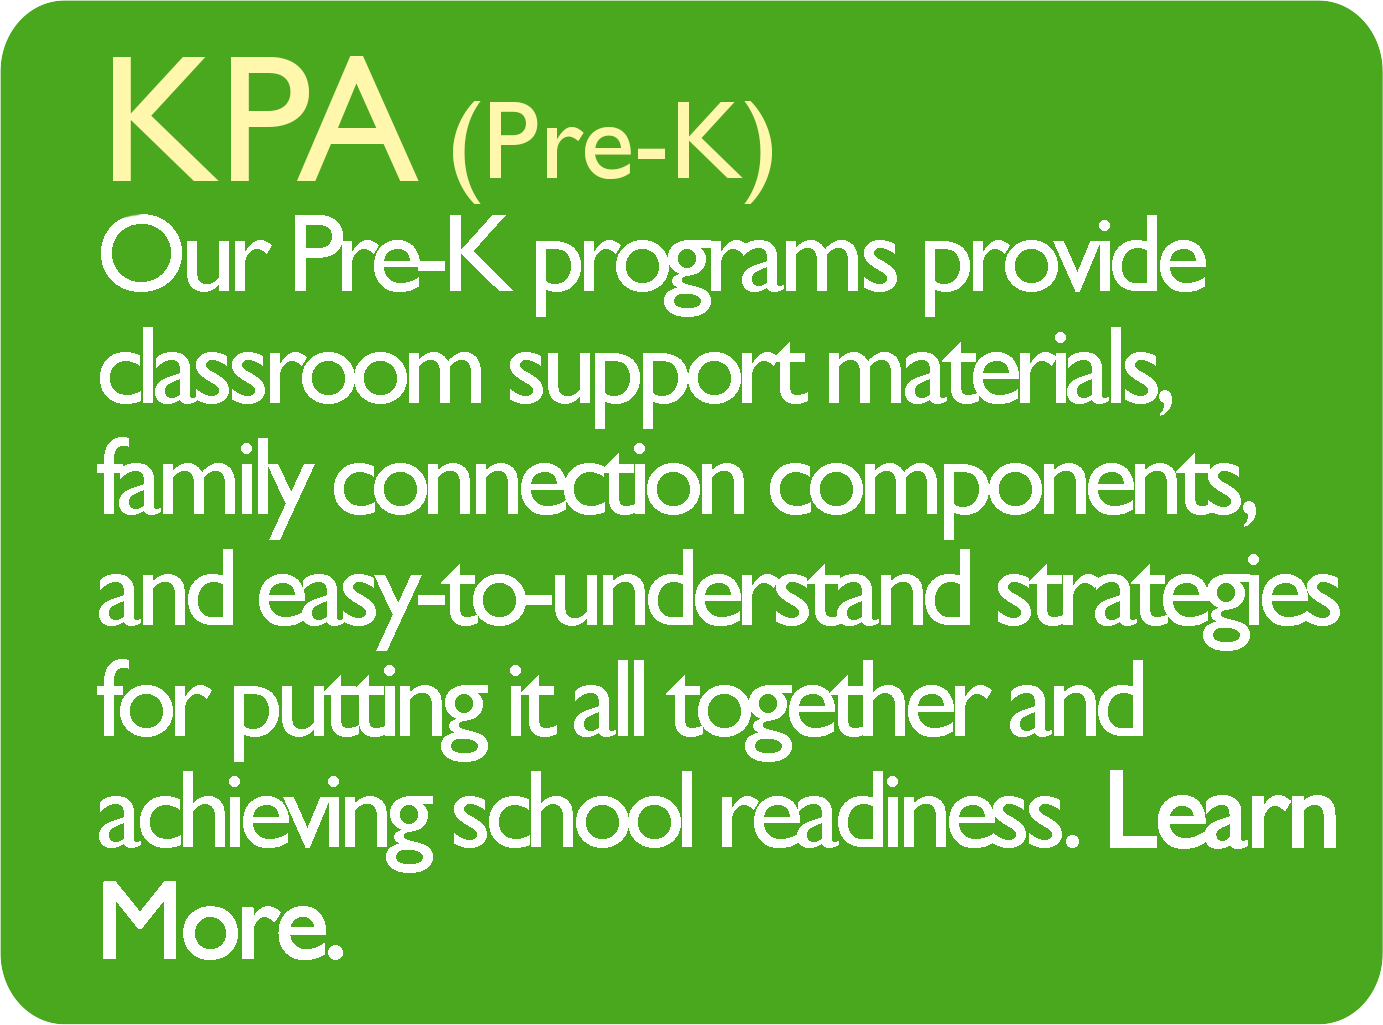 KPA (Pre-K) Our Pre-K programs provide classroom support materials, family connection components, and easy-to-understand strategies for putting it all together and achieving school readiness. Learn More.